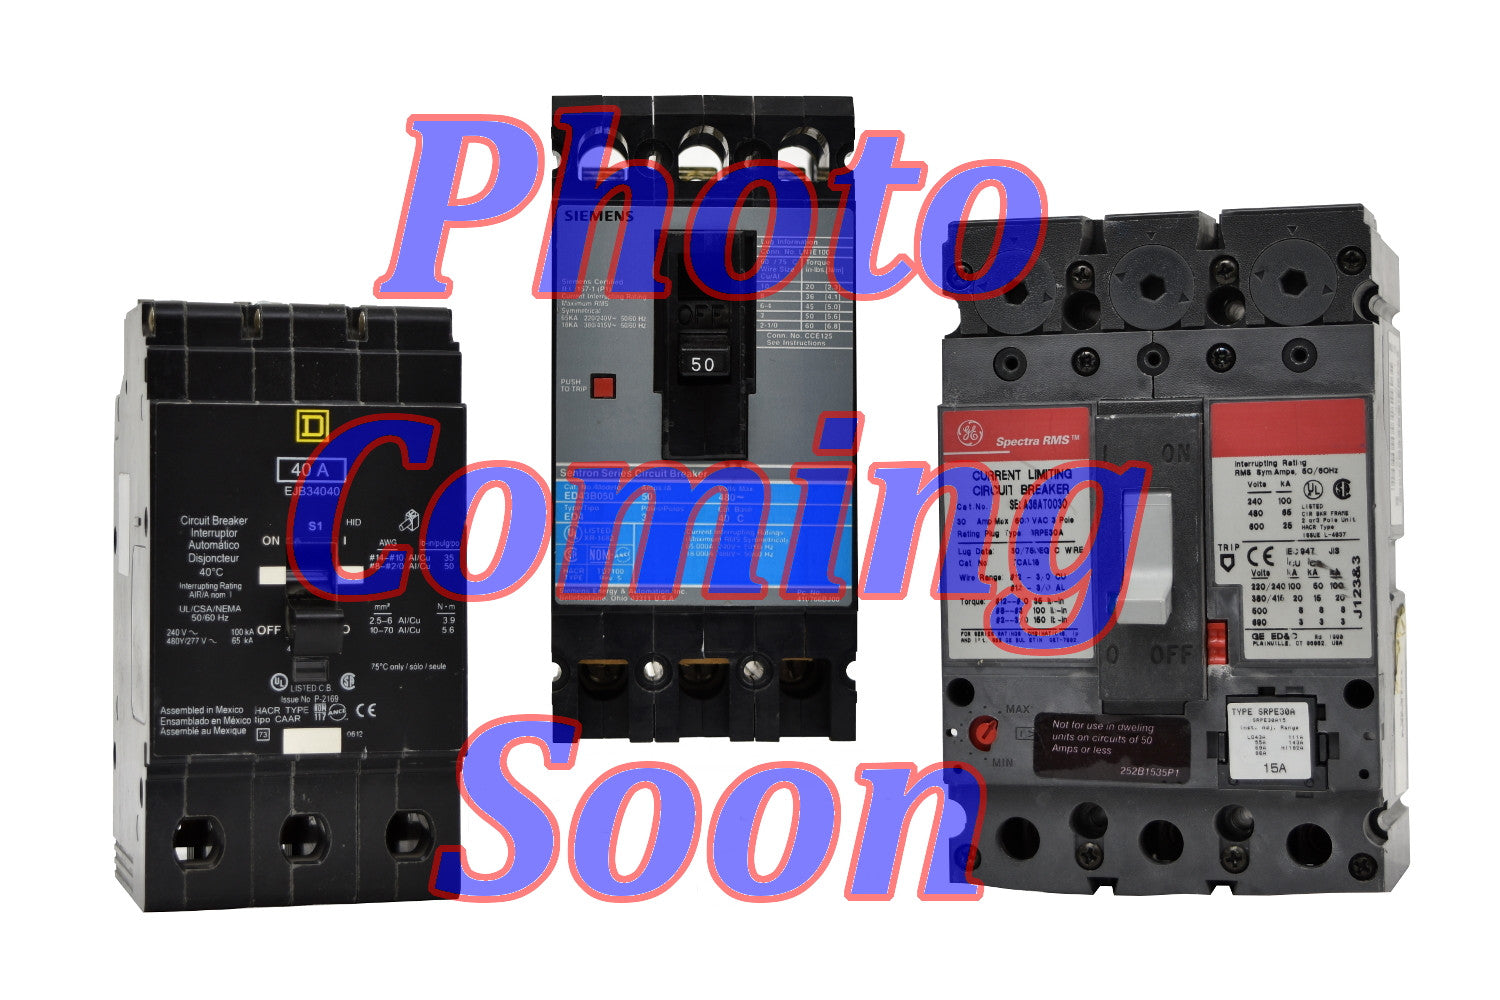 Cutler Hammer BD2030 Circuit Breakers